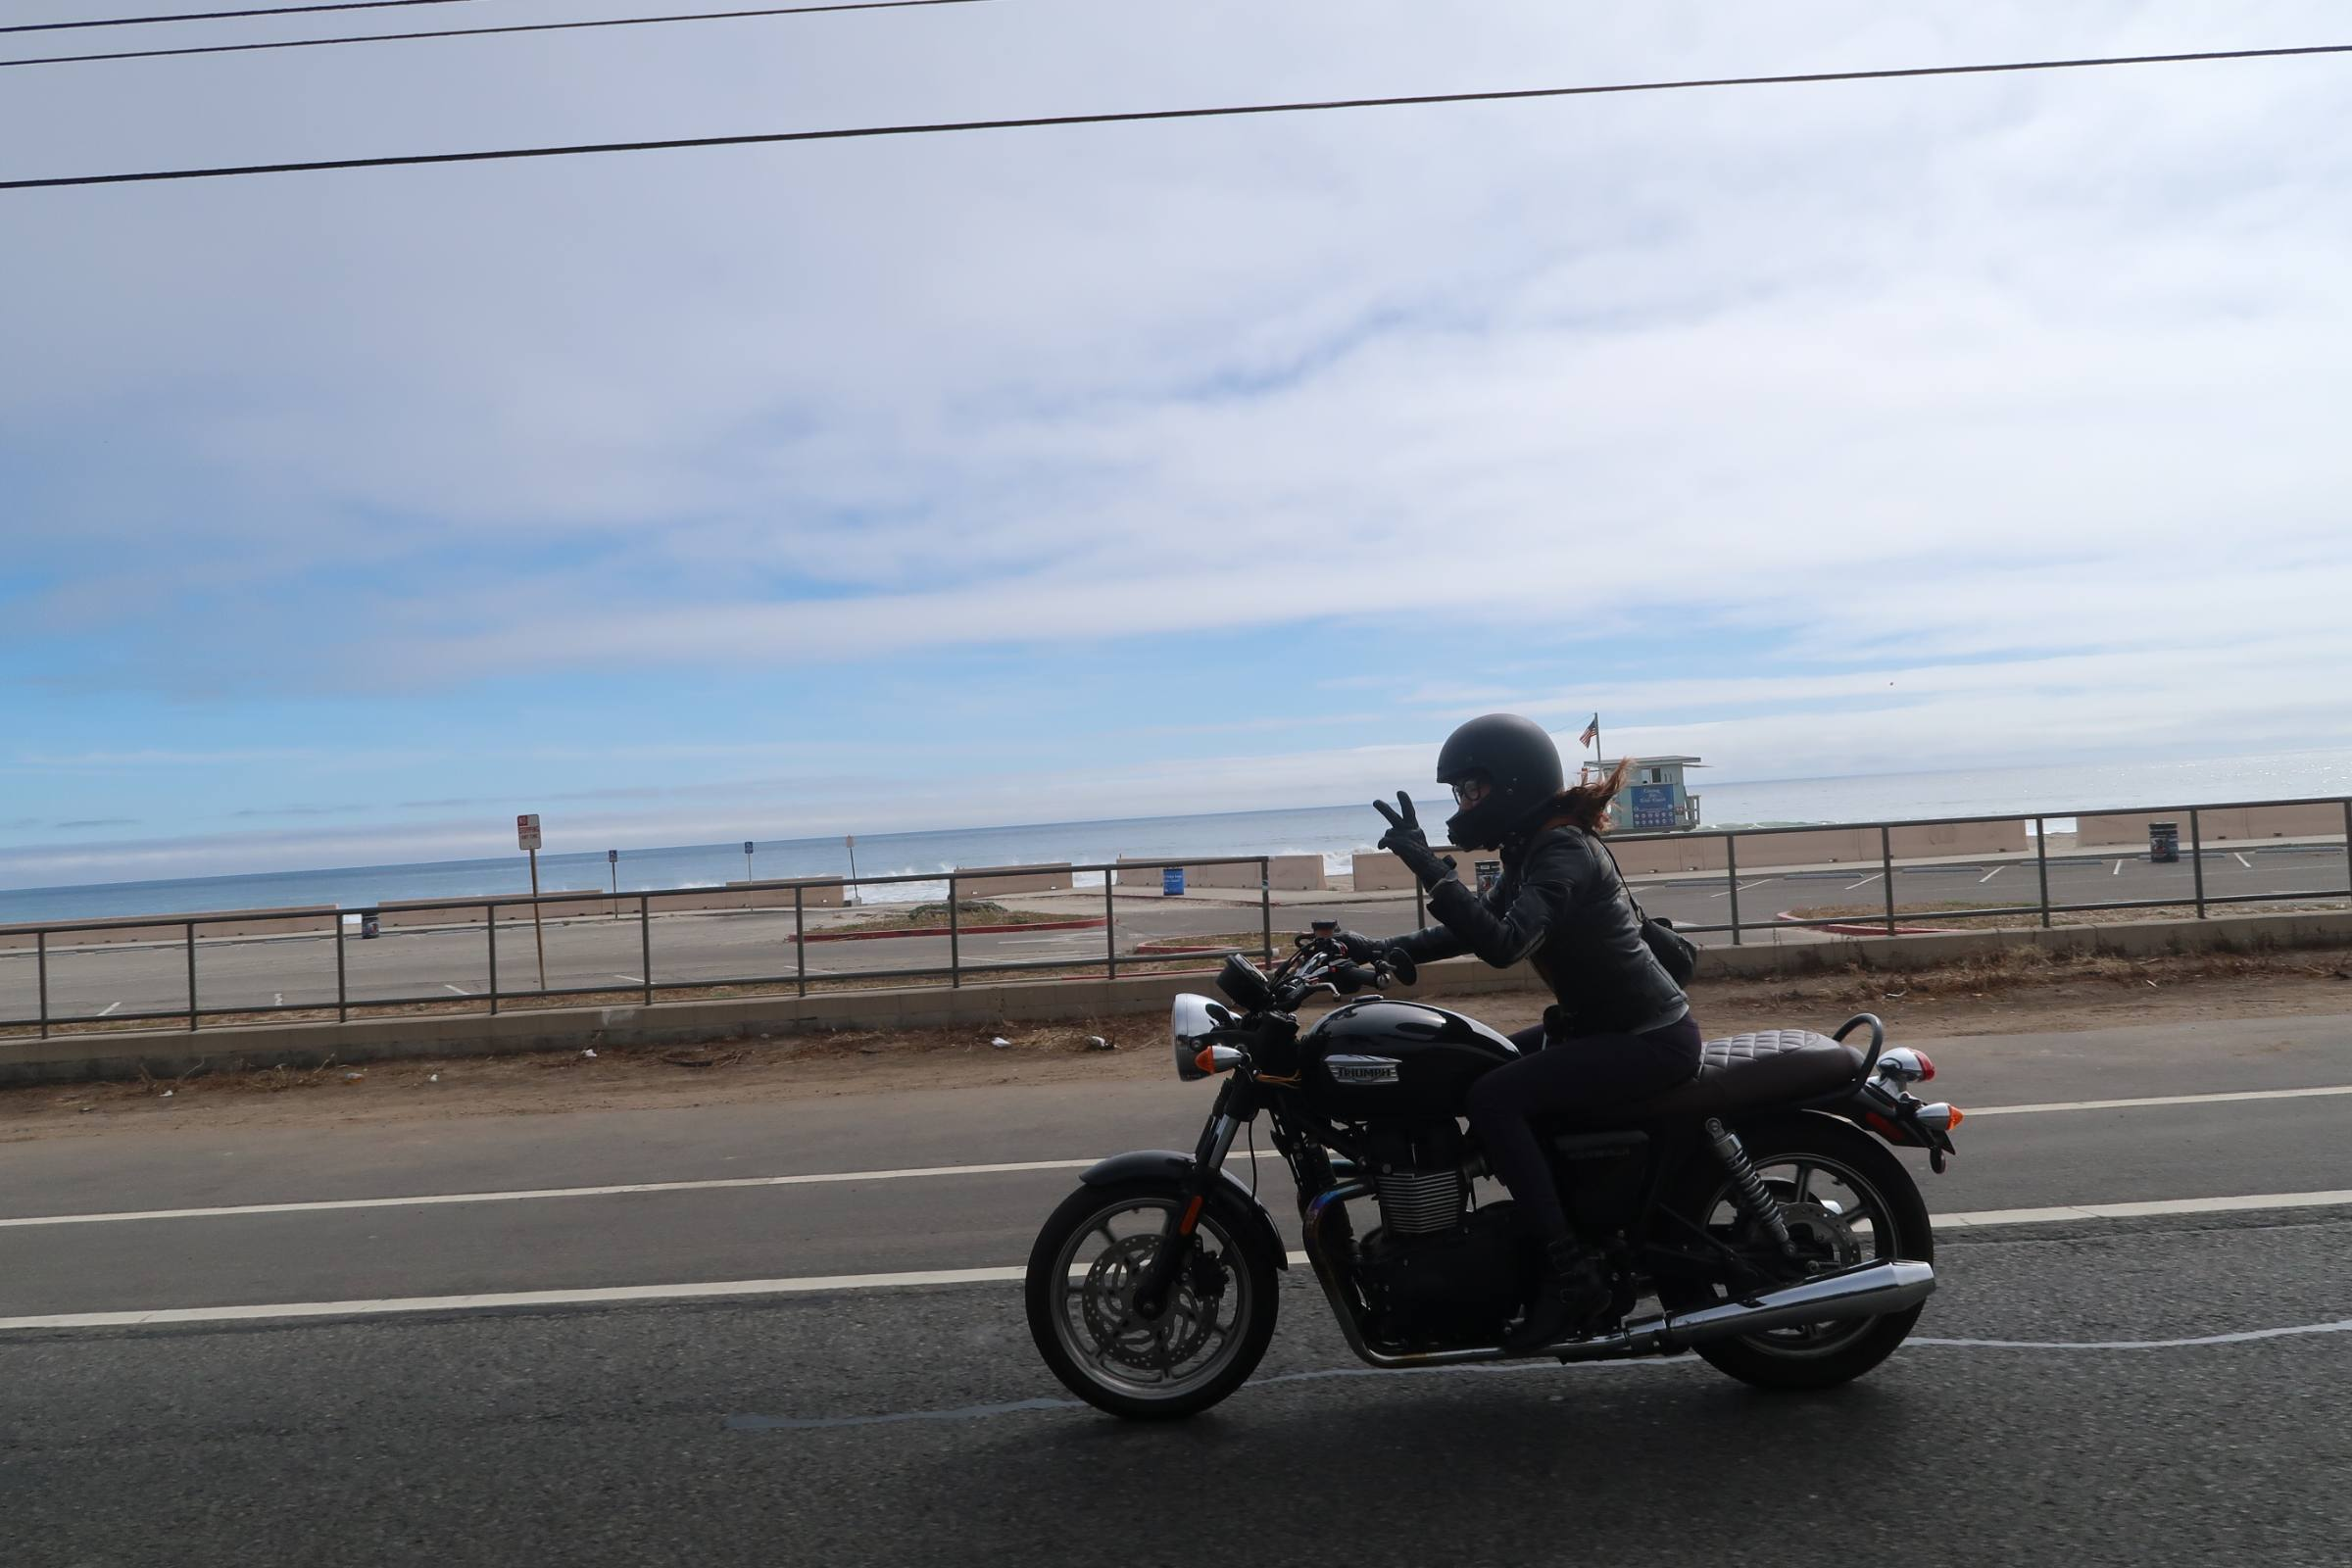 Top 10 Motorcycle Rides in Los Angeles | Discover Los Angeles